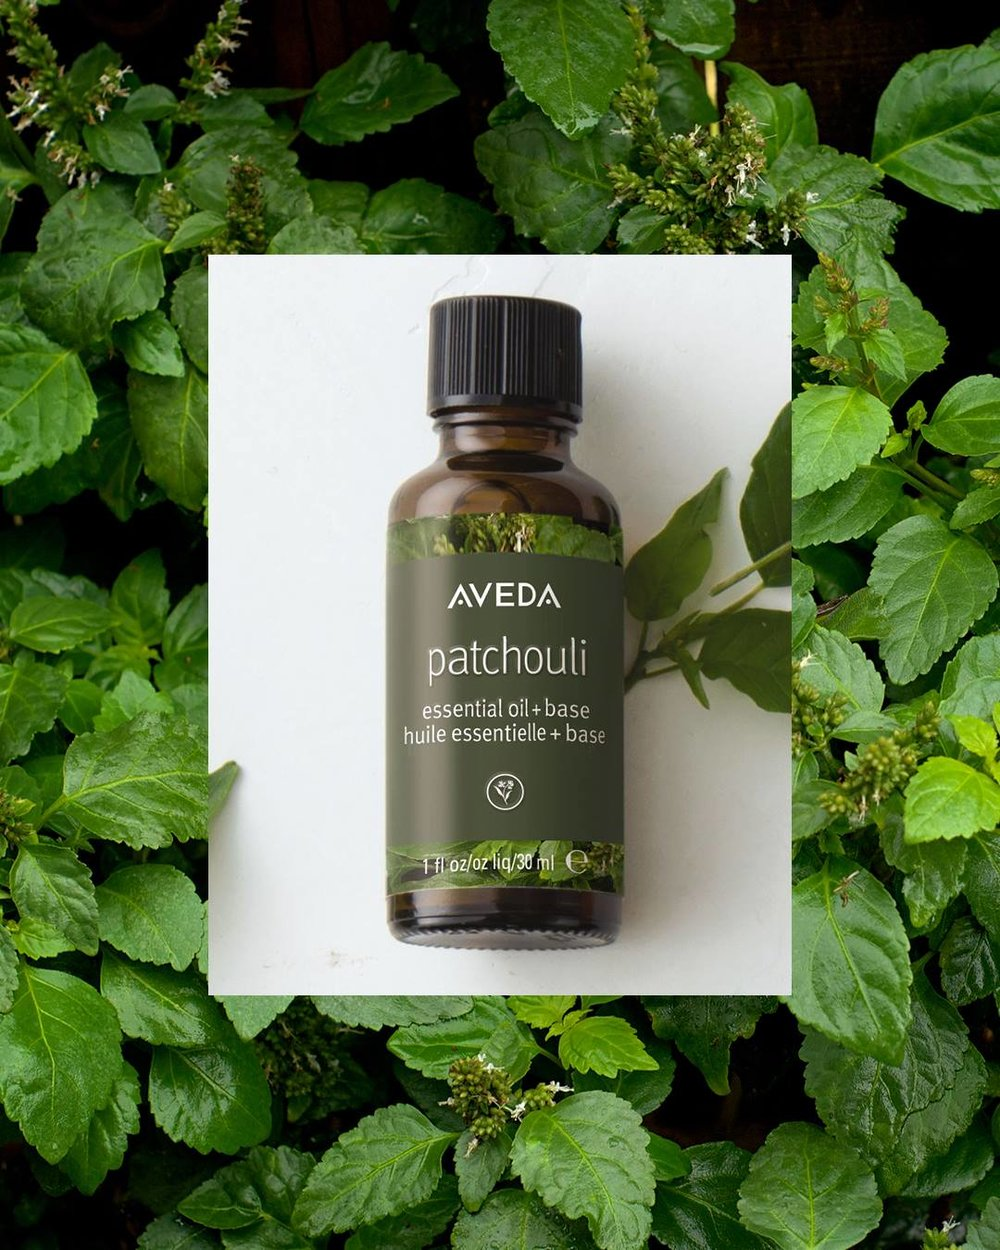 patchouli aveda essential oil.jpg